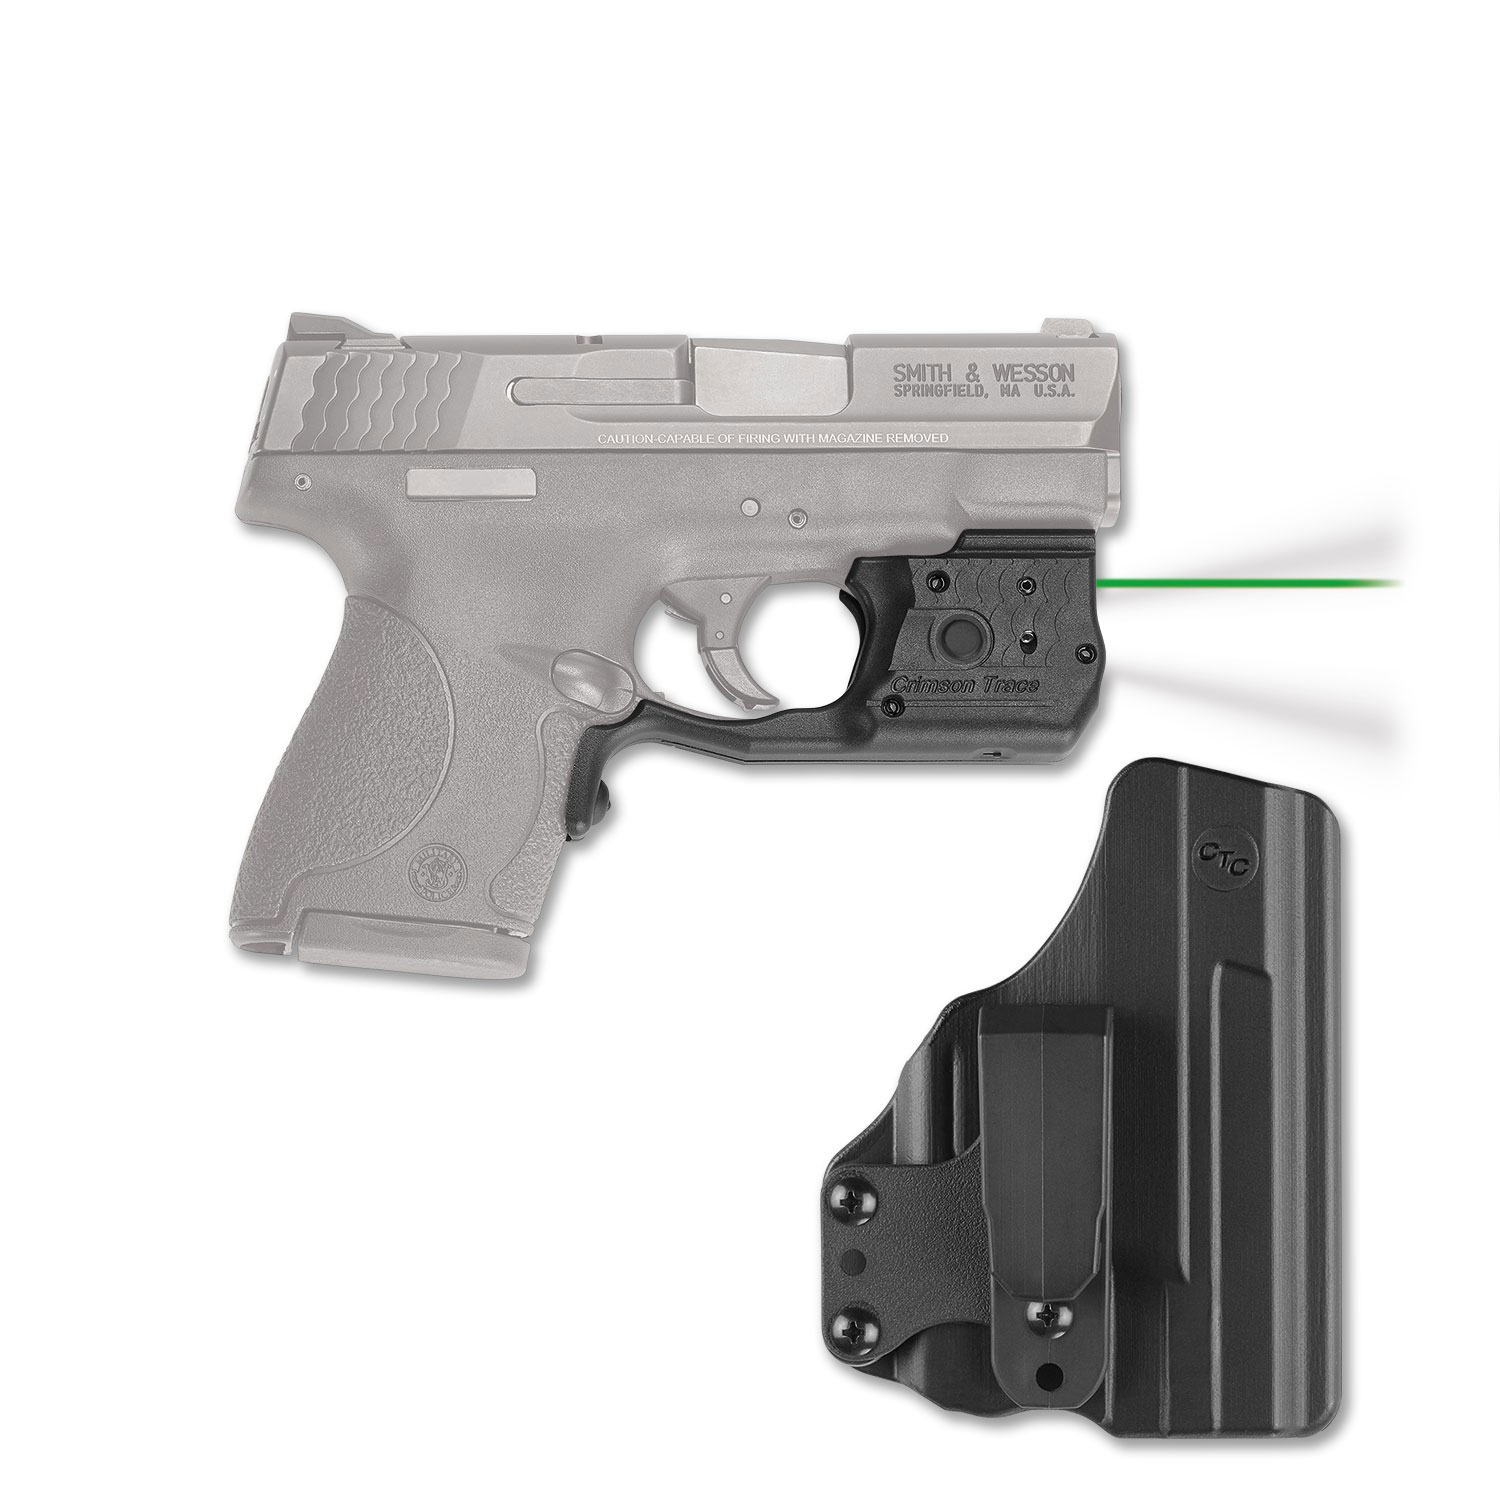 Crimson Trace LL801GHBT Laserguard Pro with Holster Green Laser S&W M&P Shield Trigger Guard Black